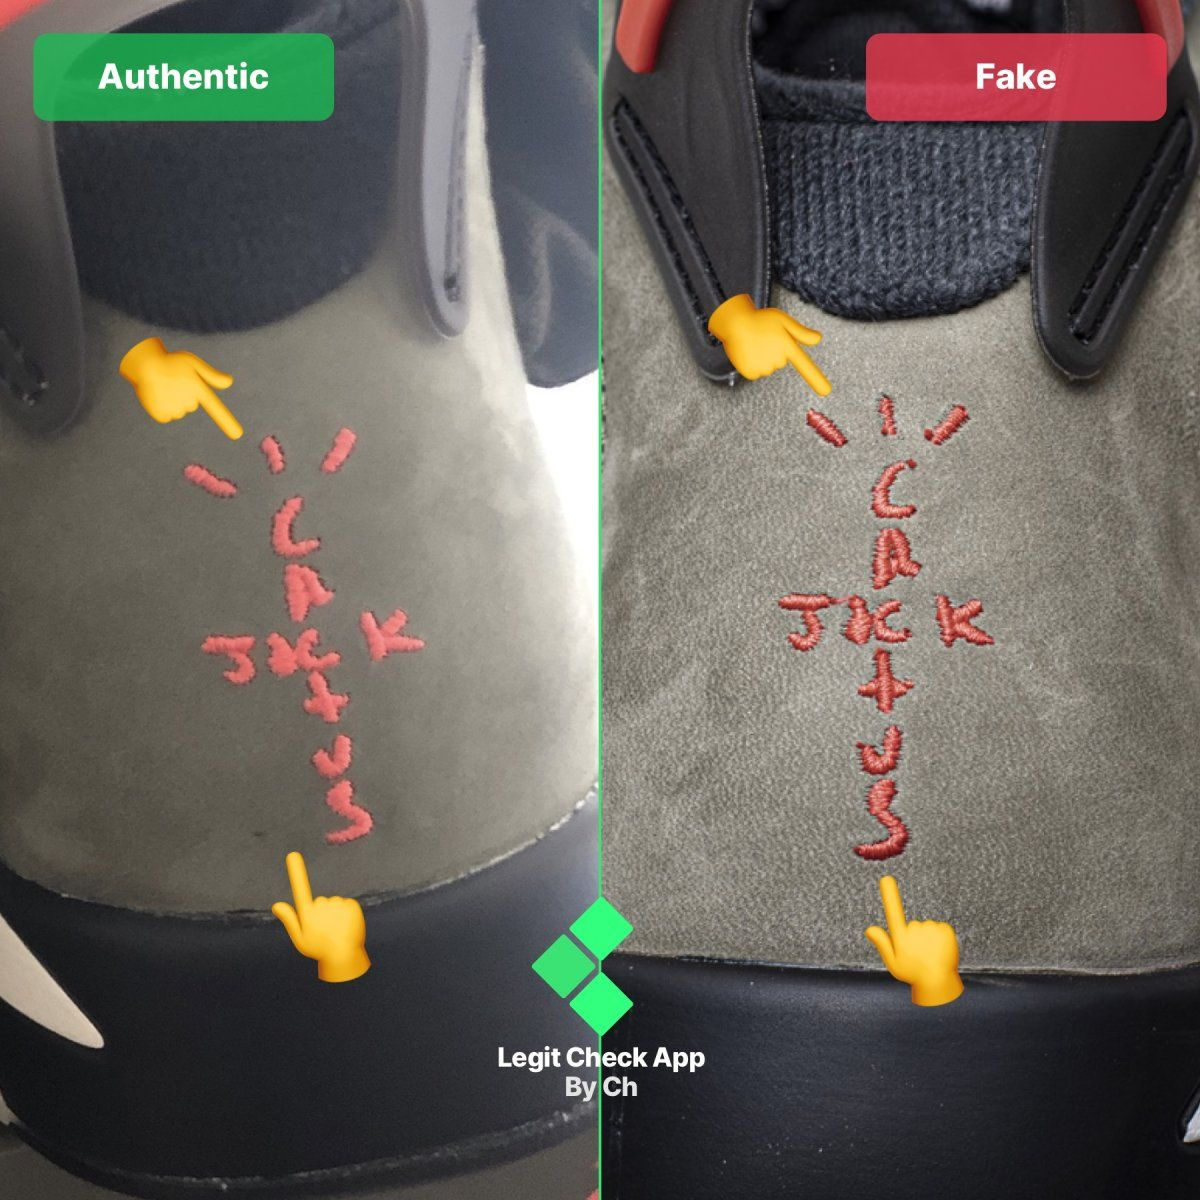 Step 1 Inspect the rear heel logos on your sneakers